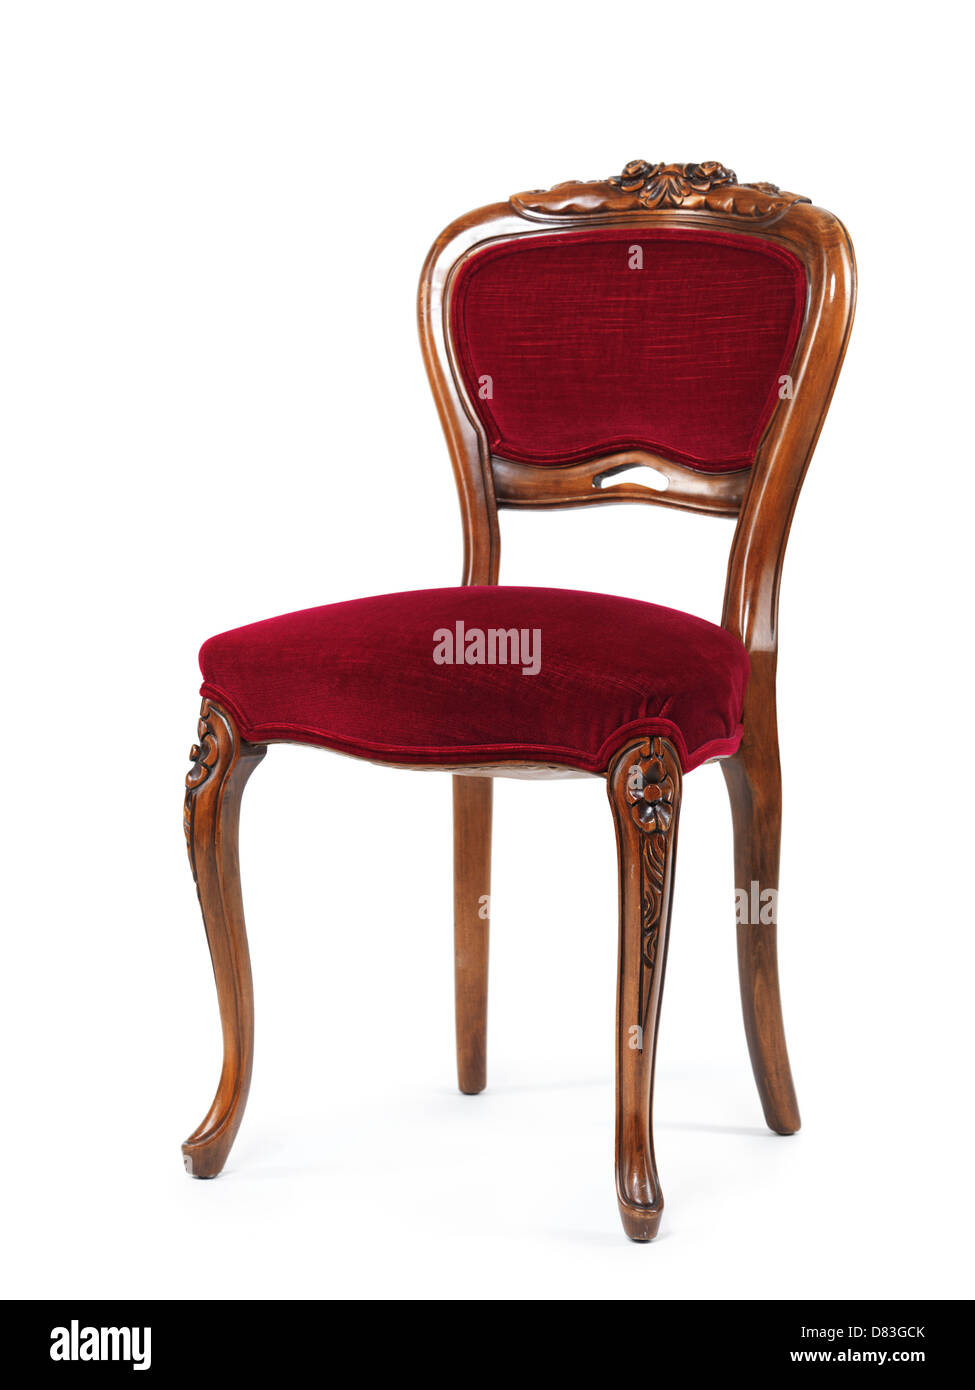 Antique wooden chair with red upholstery isolated on white background - Stock Image